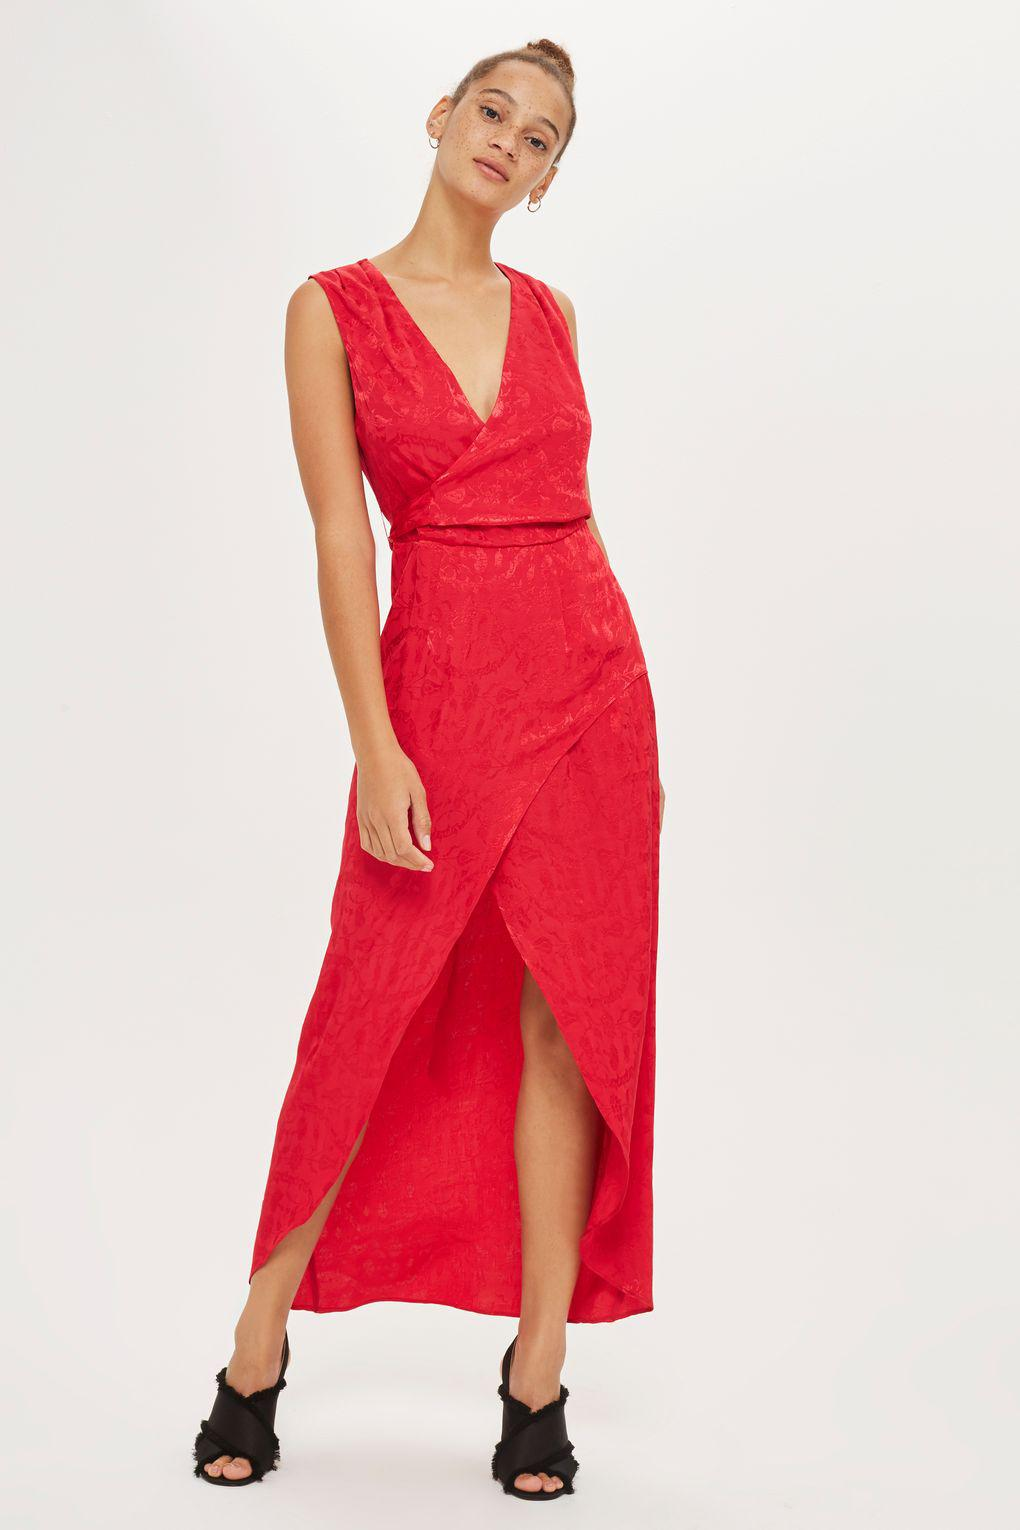 e4829111f0 TOPSHOP Jacquard Sleeveless Wrap Dress in Red - Lyst